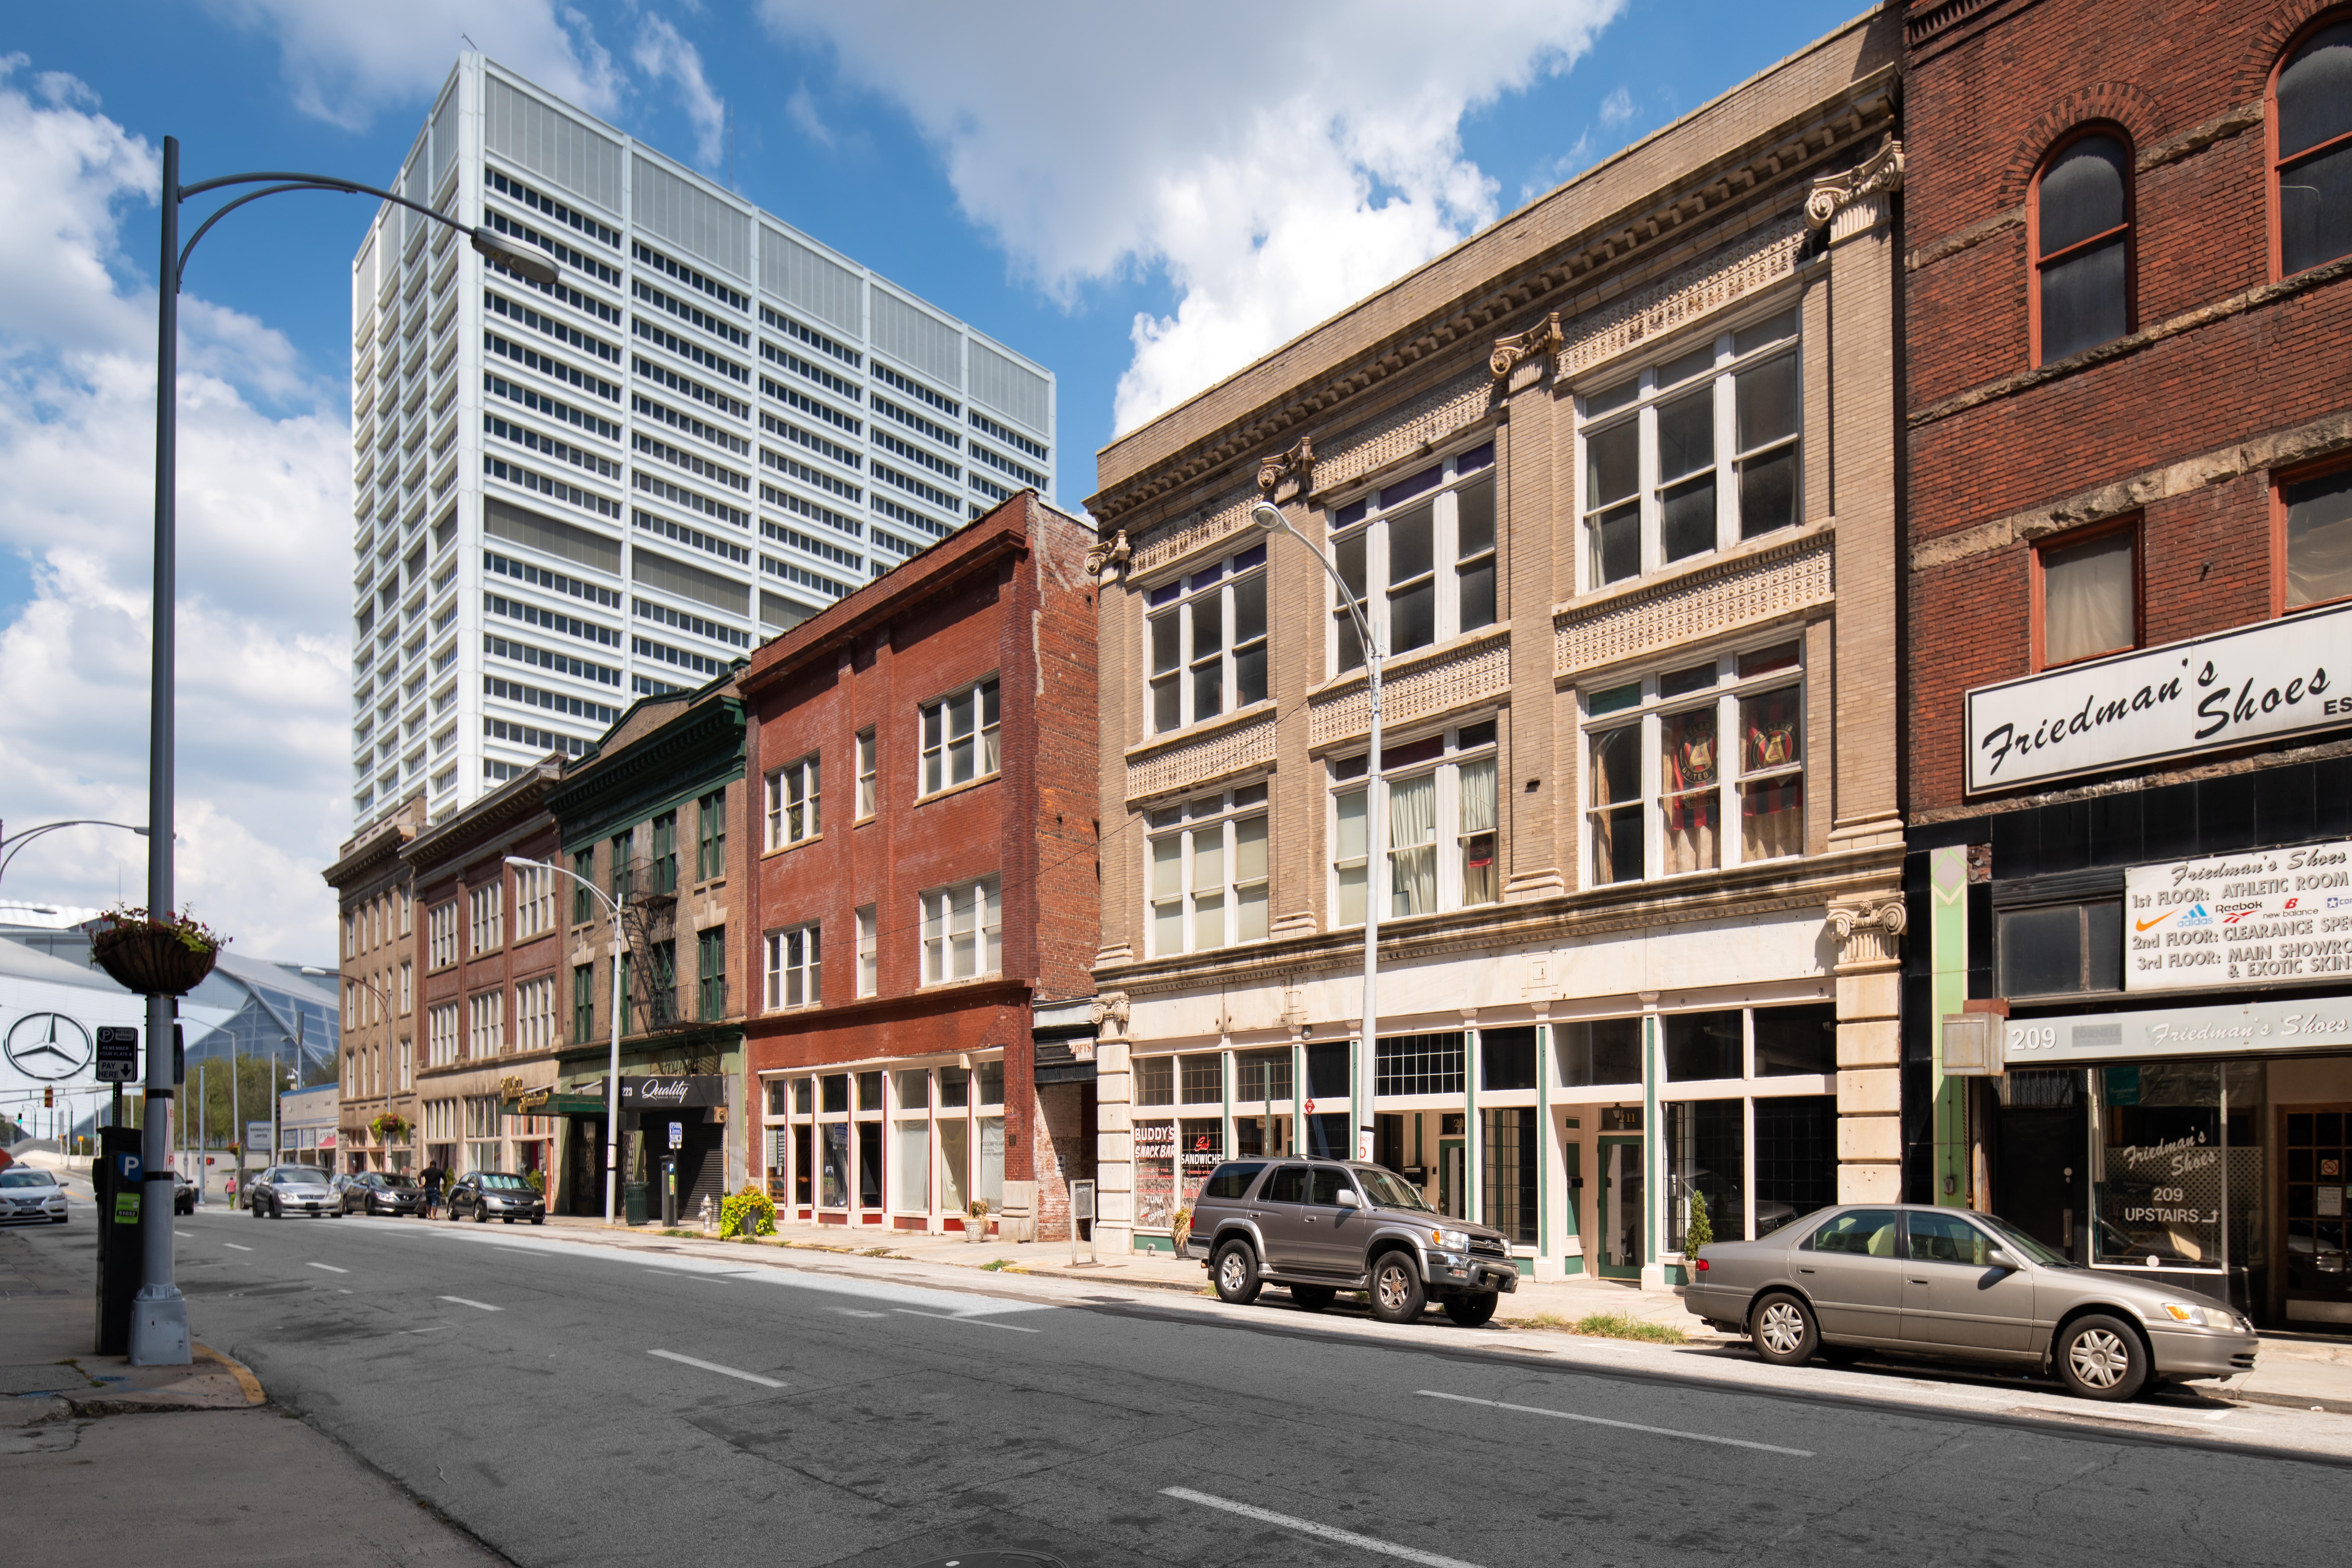 Newport to revive Atlanta's historic Hotel Row with pop-ups through (at least) July